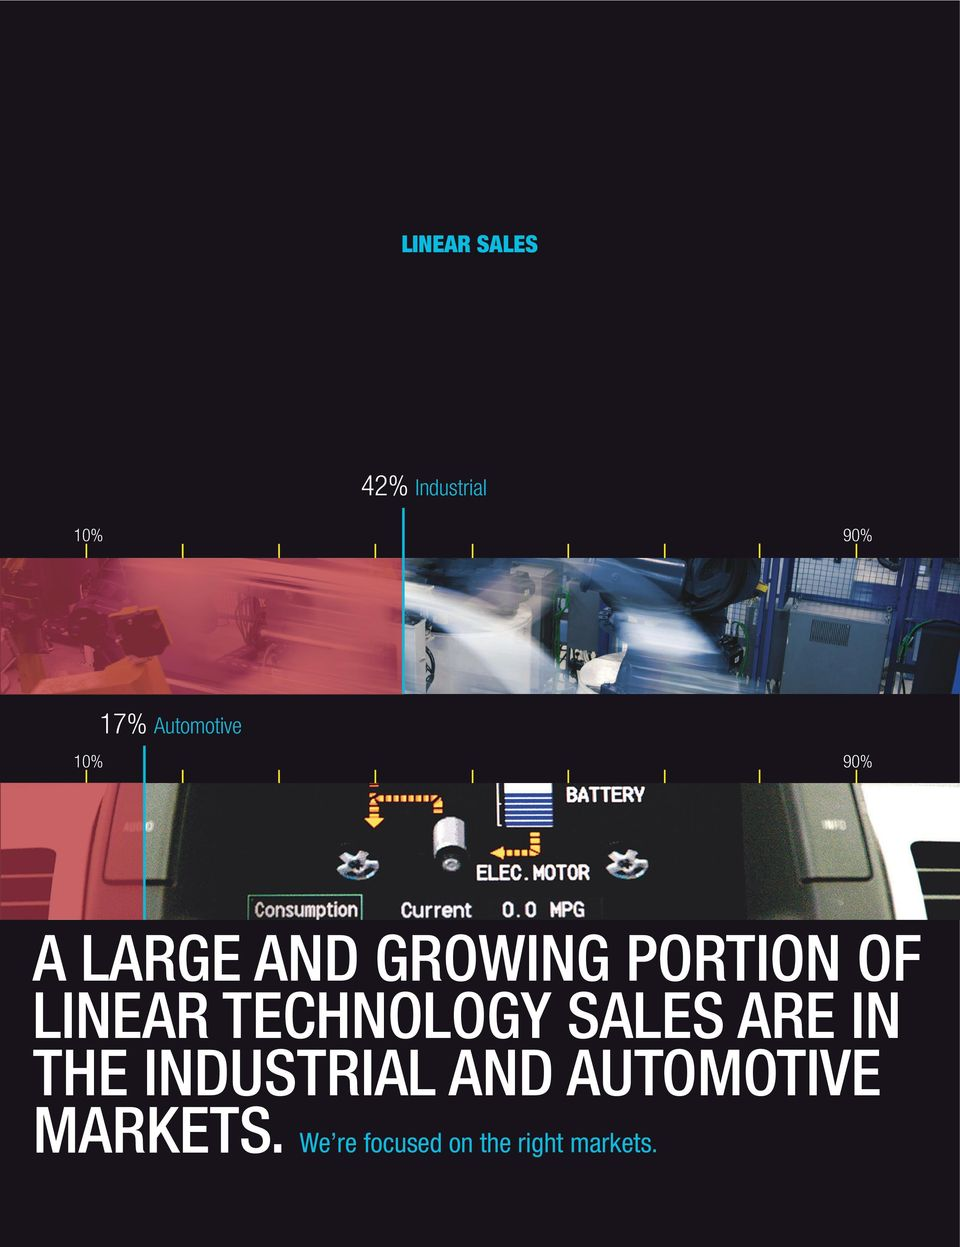 OF LINEAR TECHNOLOGY SALES ARE IN THE INDUSTRIAL